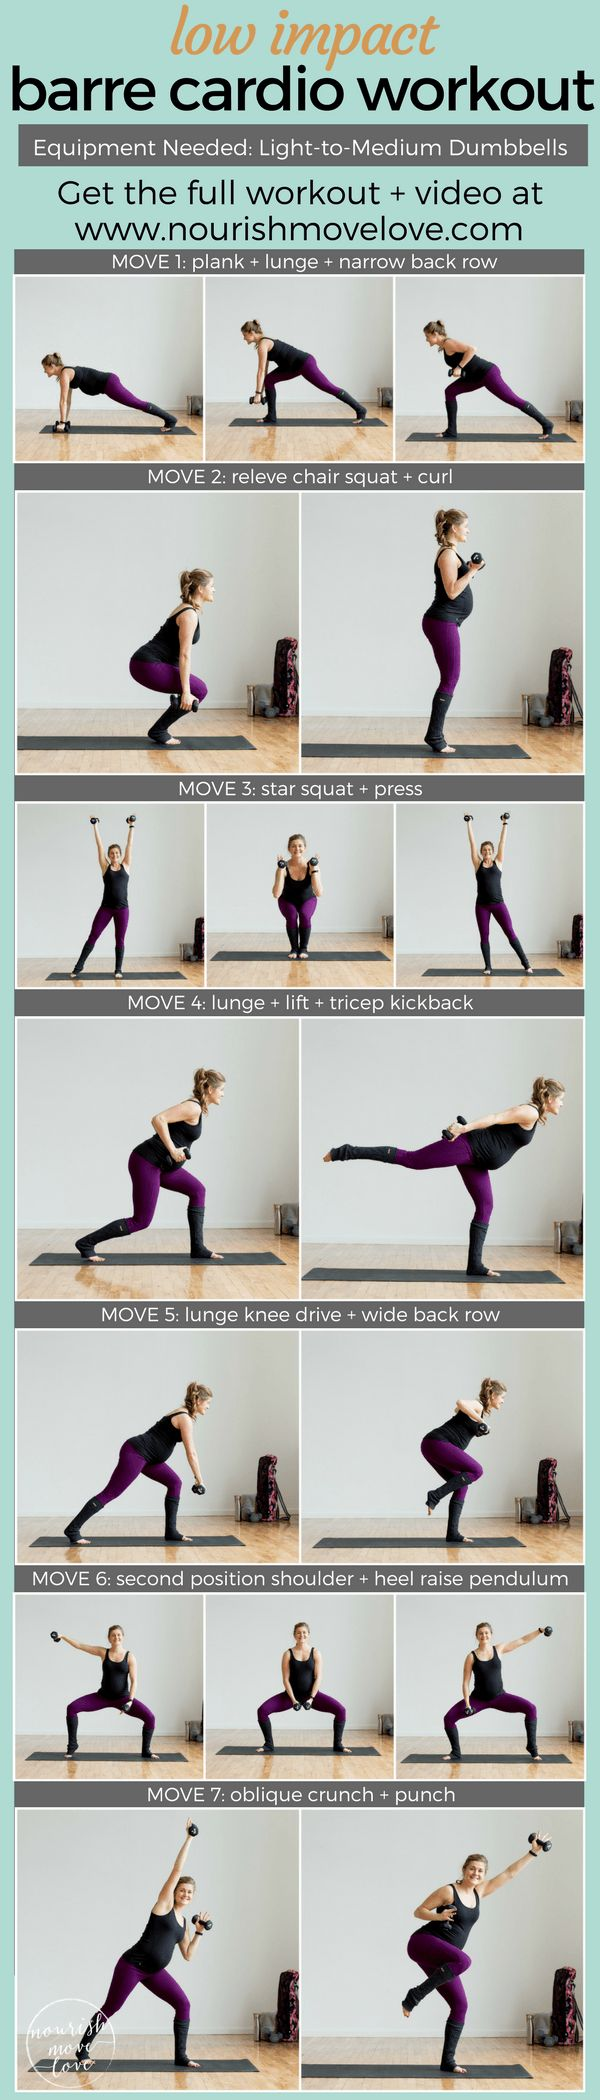 7 barre inspired exercises for a complete at home workout! Use light-to-medium dumbbells for this ballet inspired workout. Burn calories with these low impact but high intensity moves. Great for anyone with bad knees, runners who need an impact break, or for pregnant or new mom's getting back into a workout routine | www.nourishmovelove.com